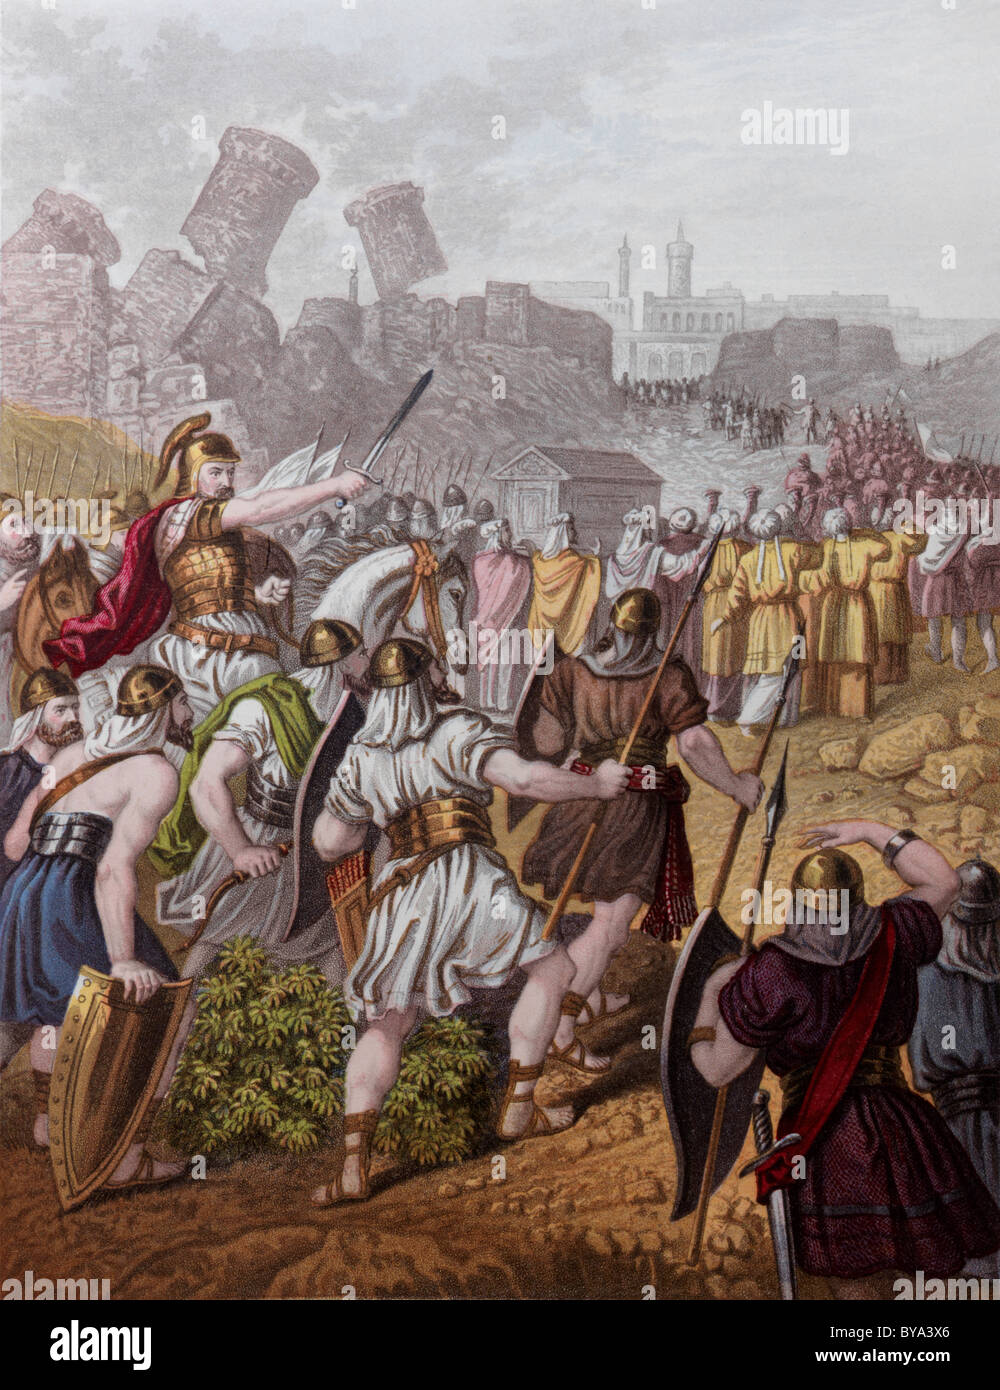 Bible Stories Illustration Of The Israelites Encompassing The Walls Of Jericho - Stock Image